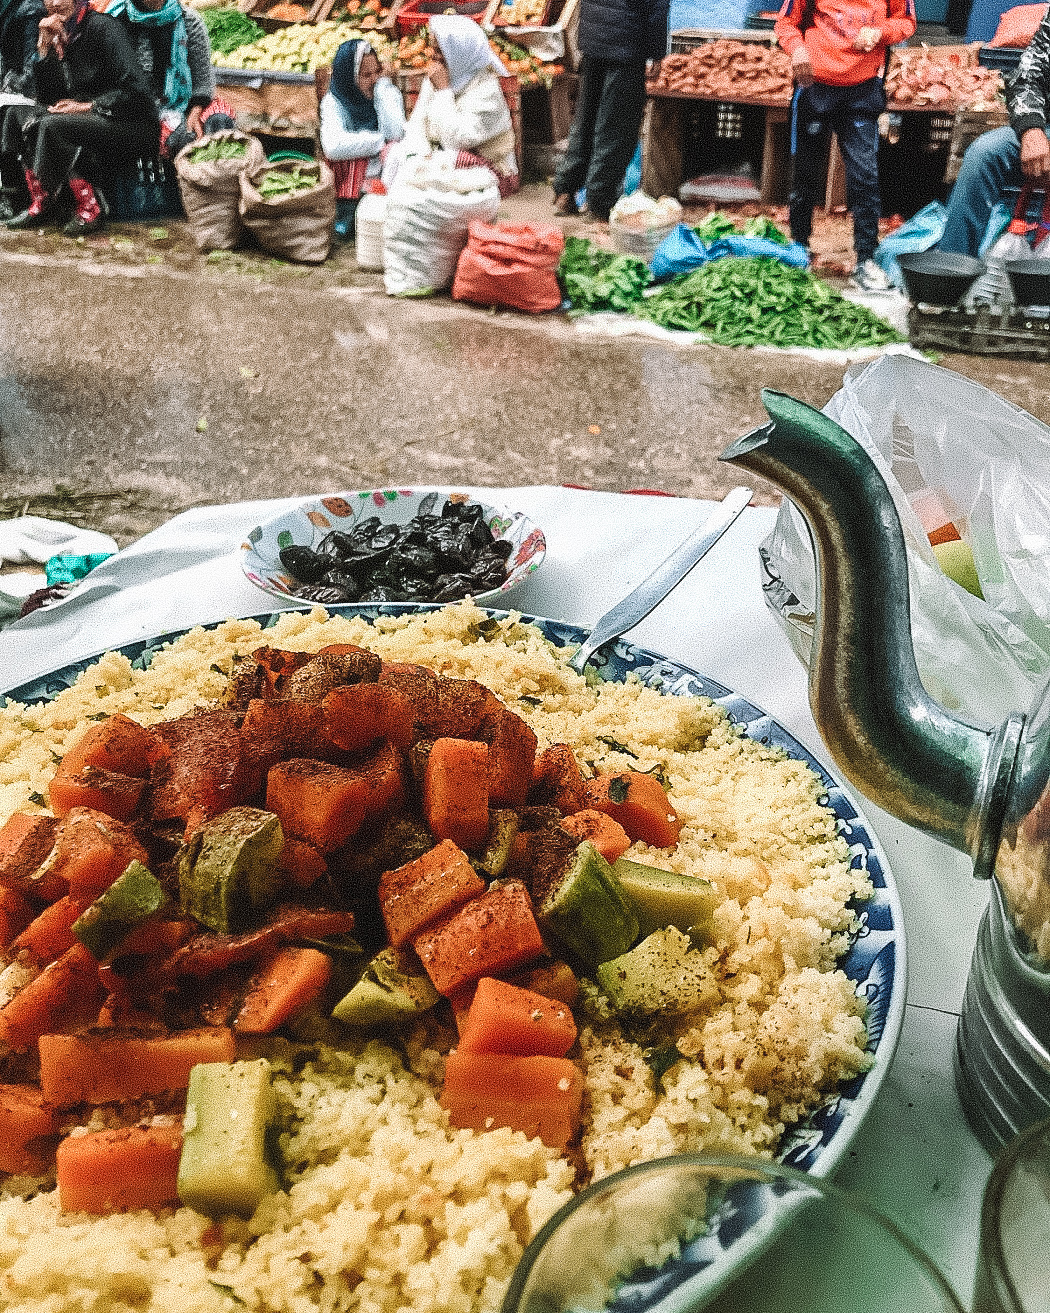 cous cous in local market